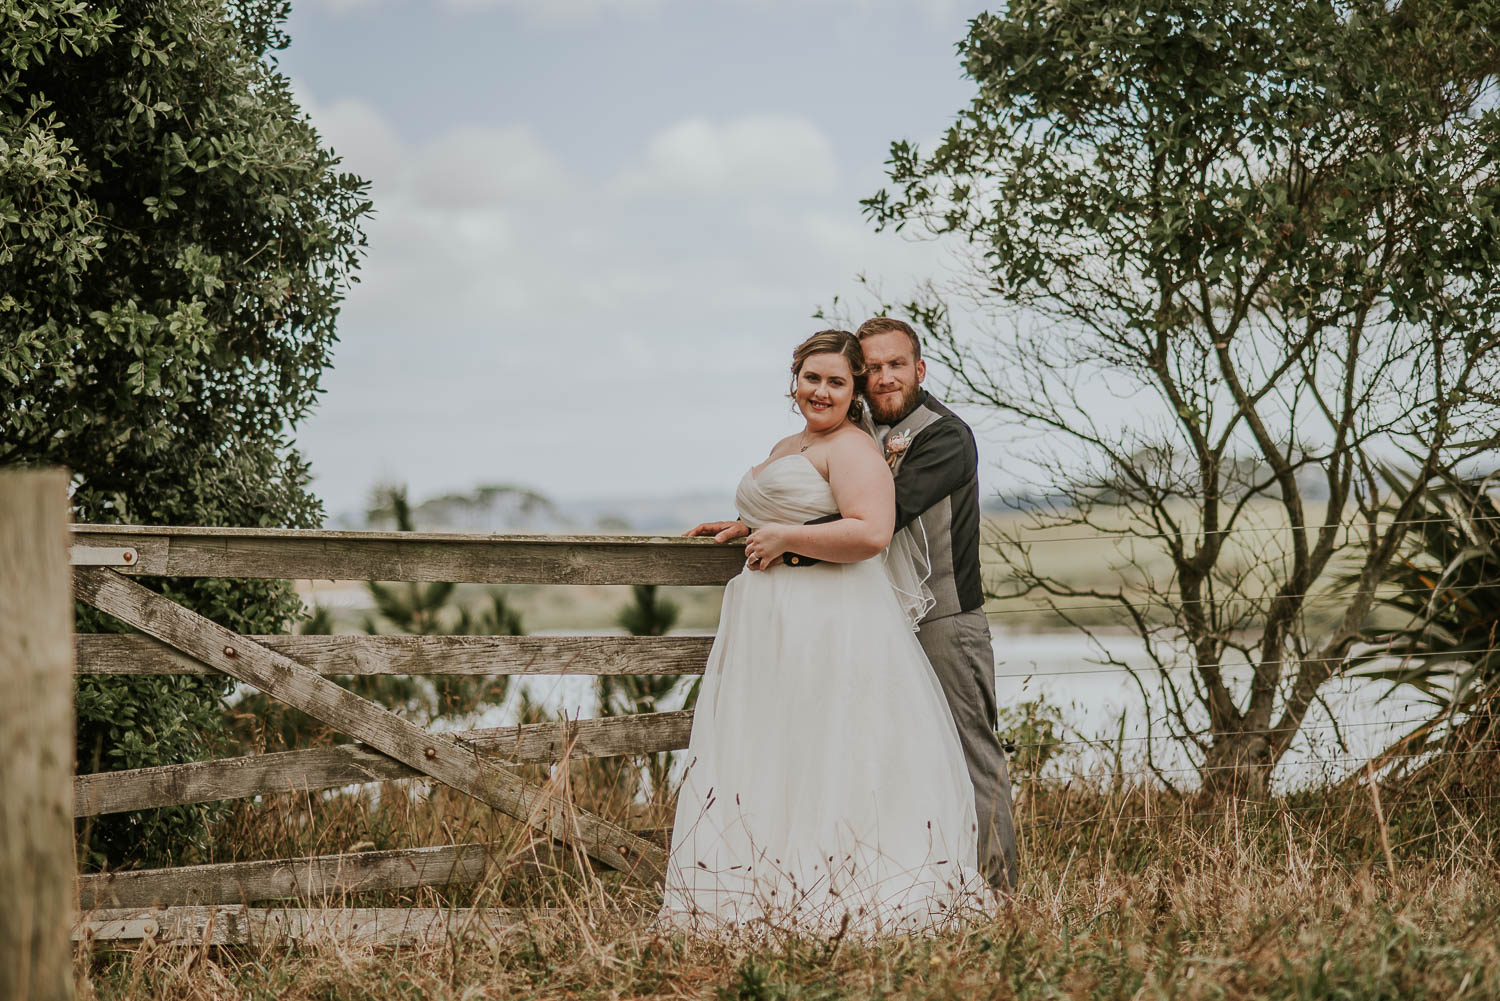 David-Alysha-Farm-Rustic-Auckland-Wedding-47